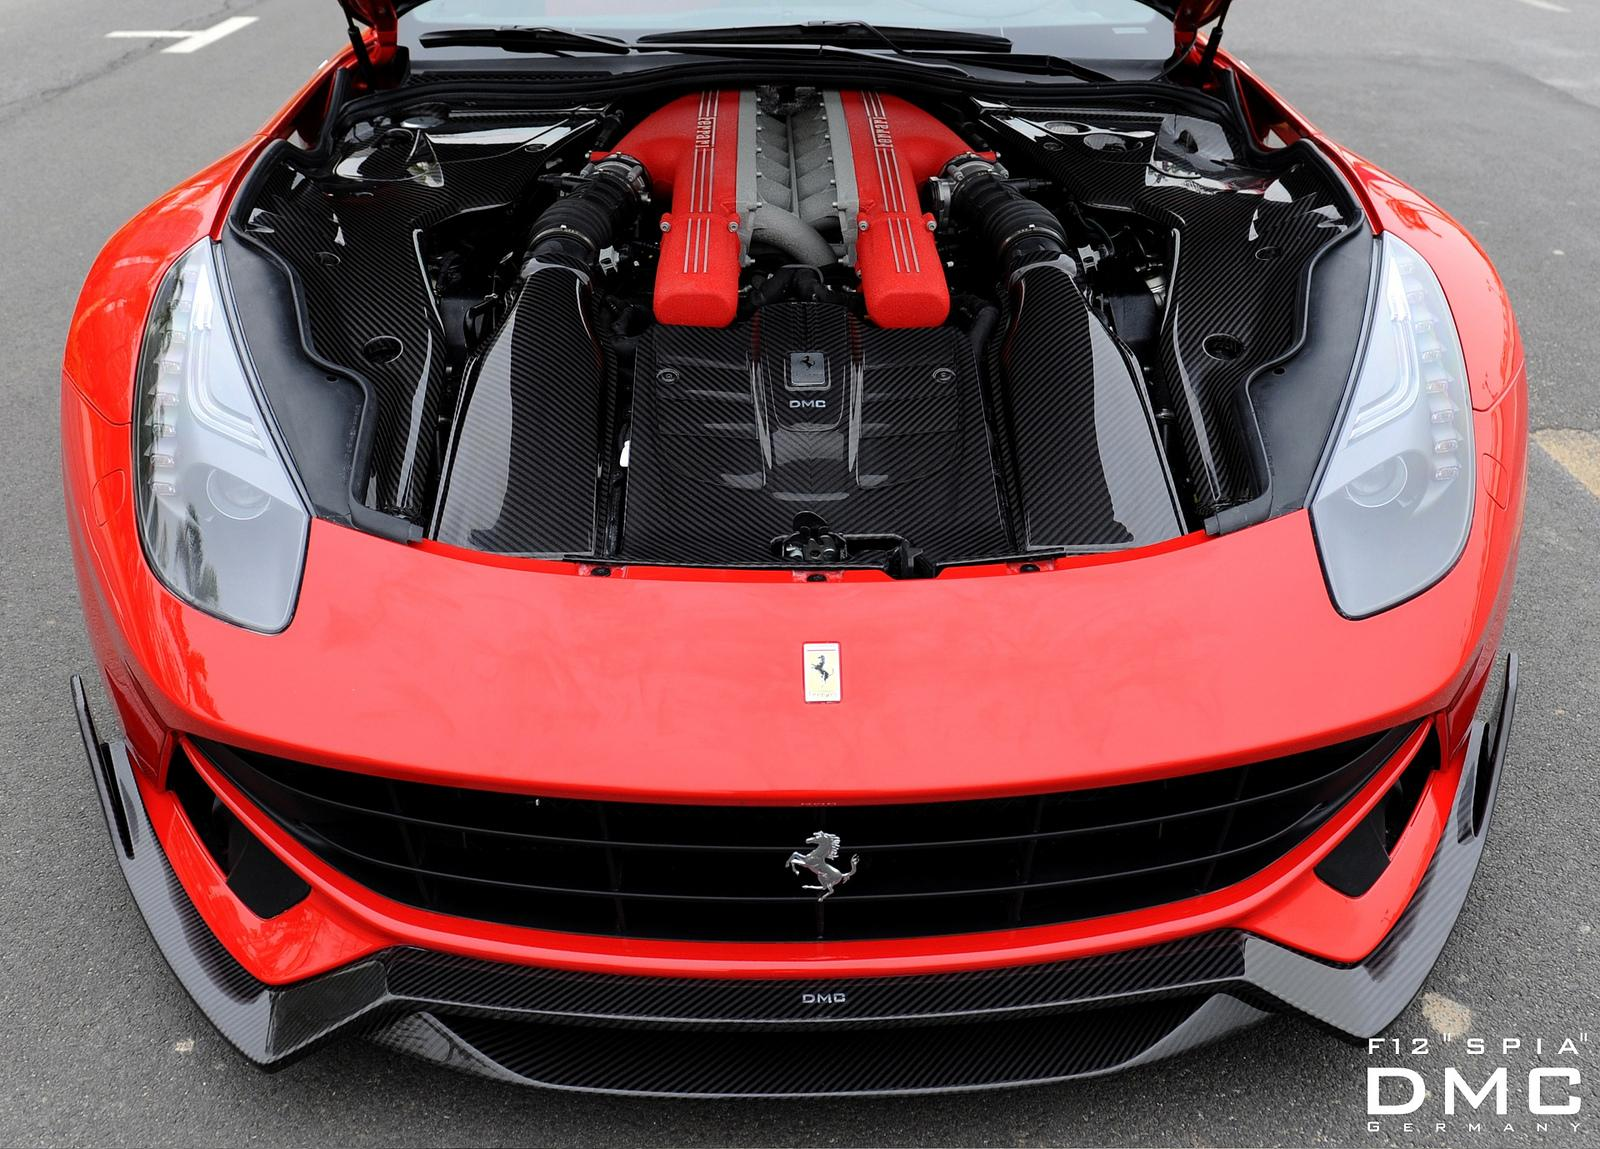 ferrari f12 berlinetta 39 spia 39 tuned by dmc. Black Bedroom Furniture Sets. Home Design Ideas